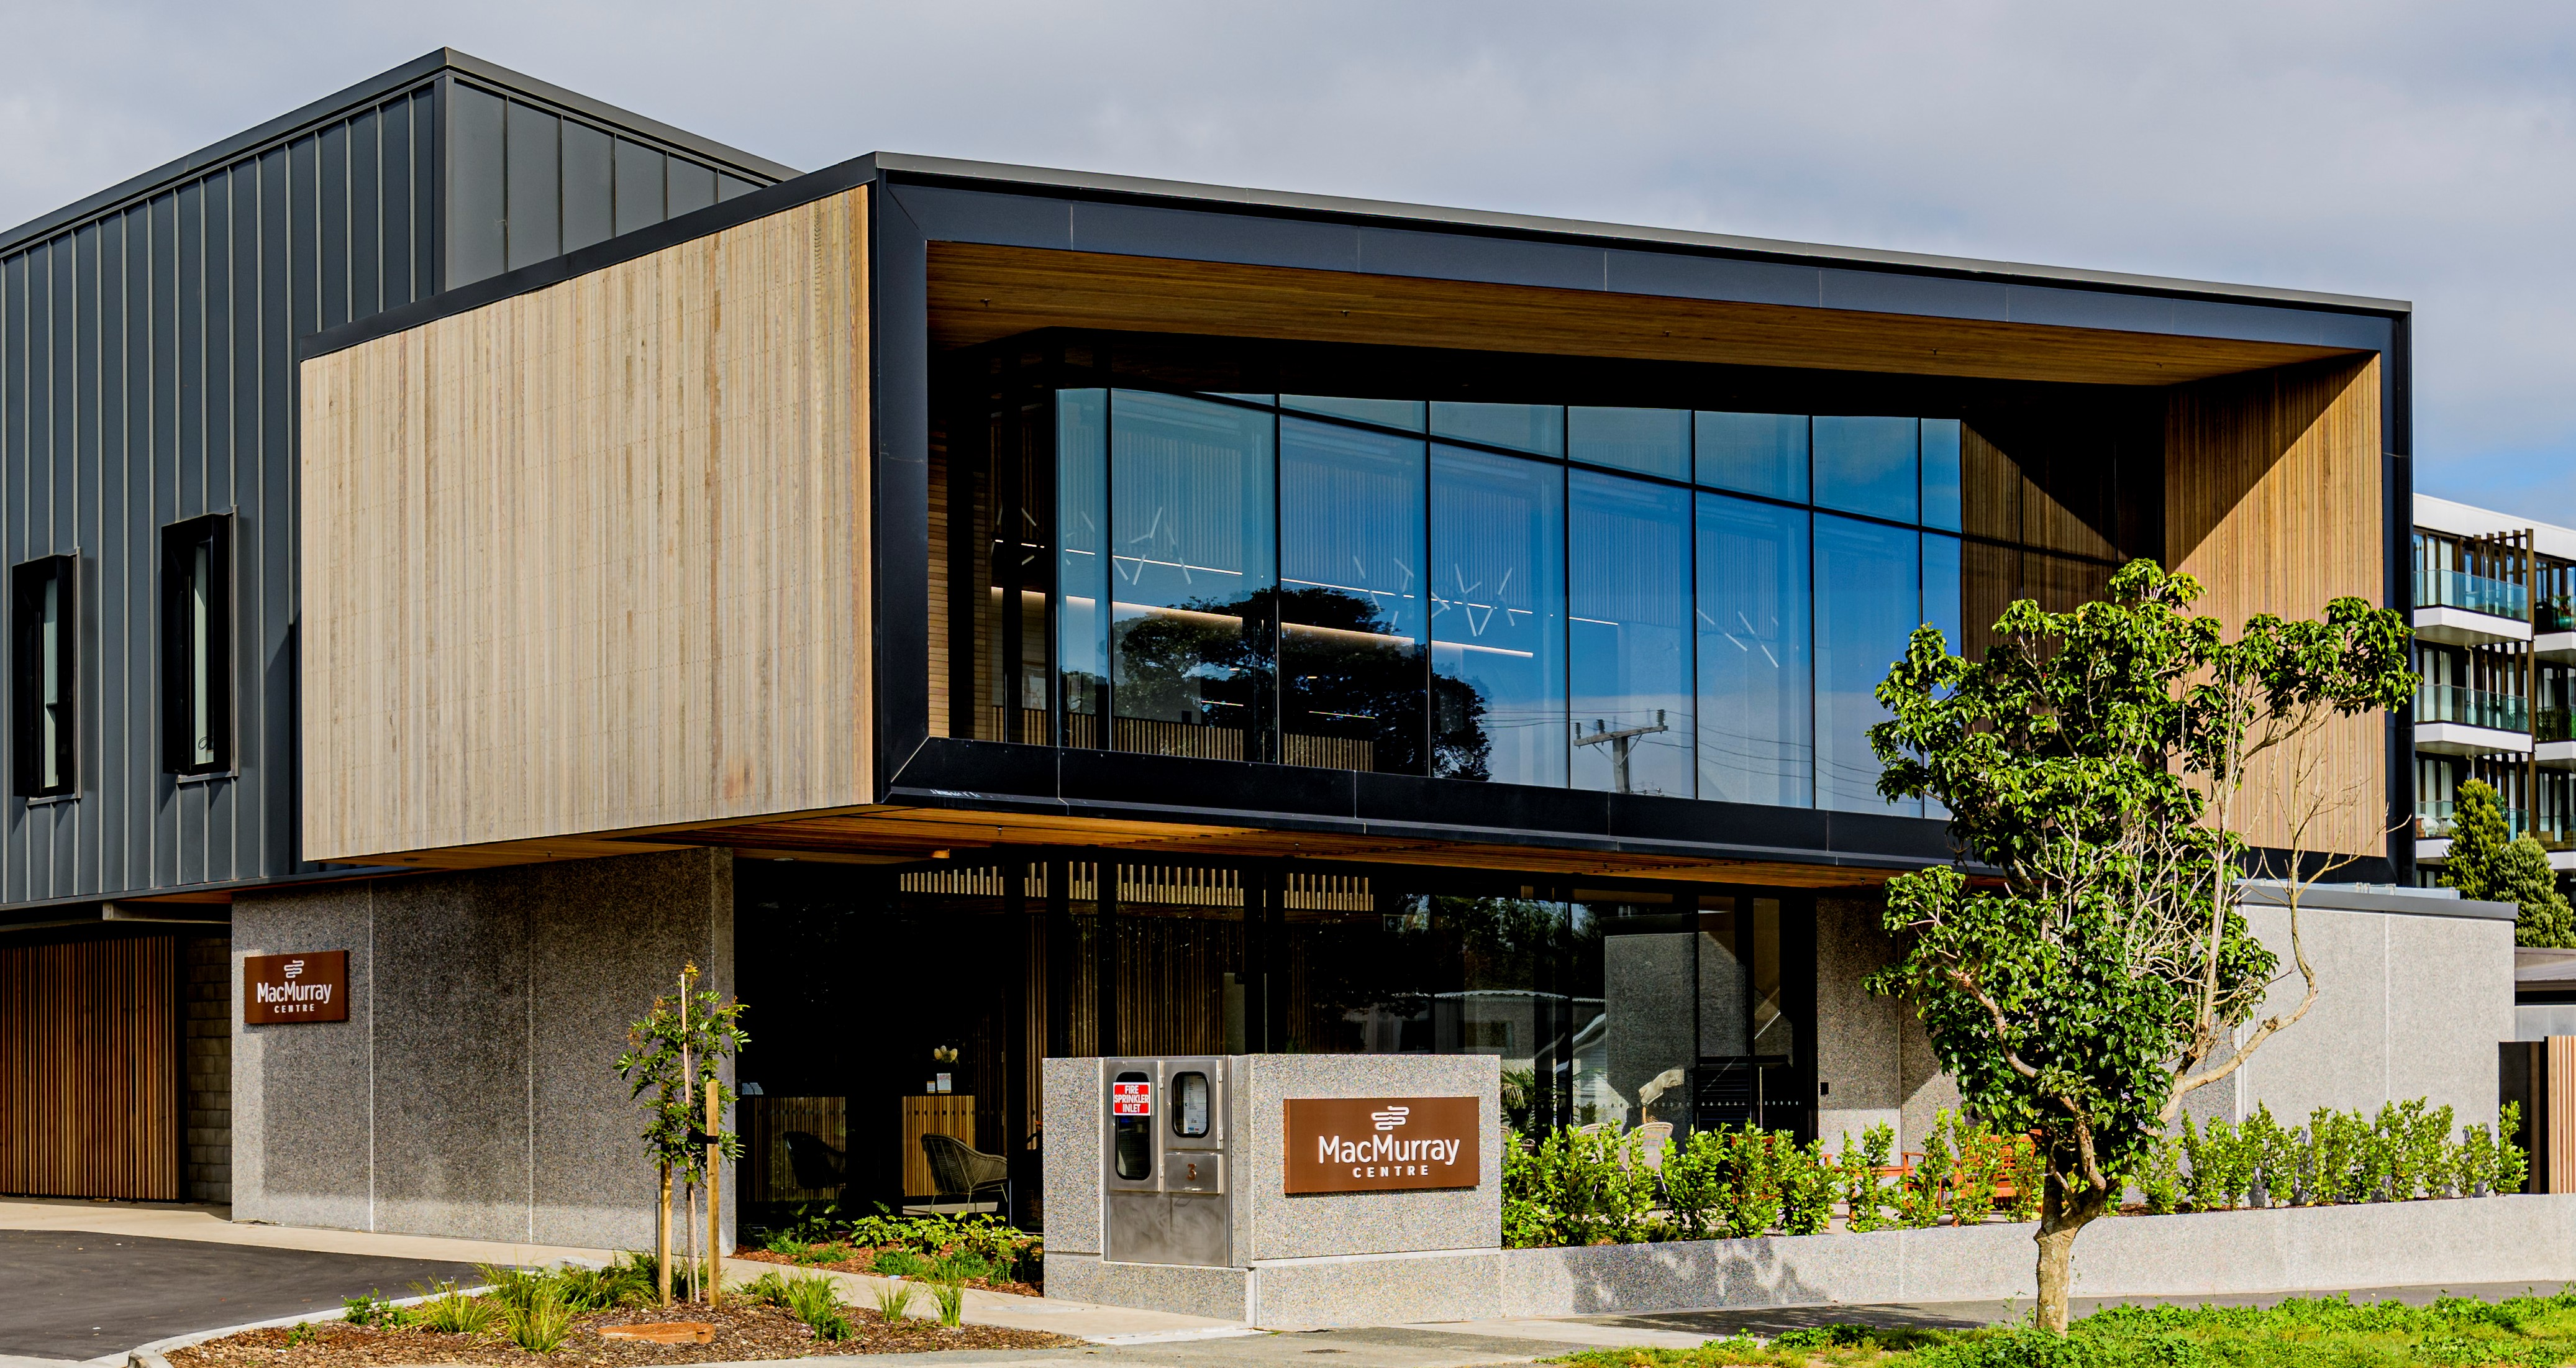 The MacMurray Centre - a private medical facility in Remuera, Auckland